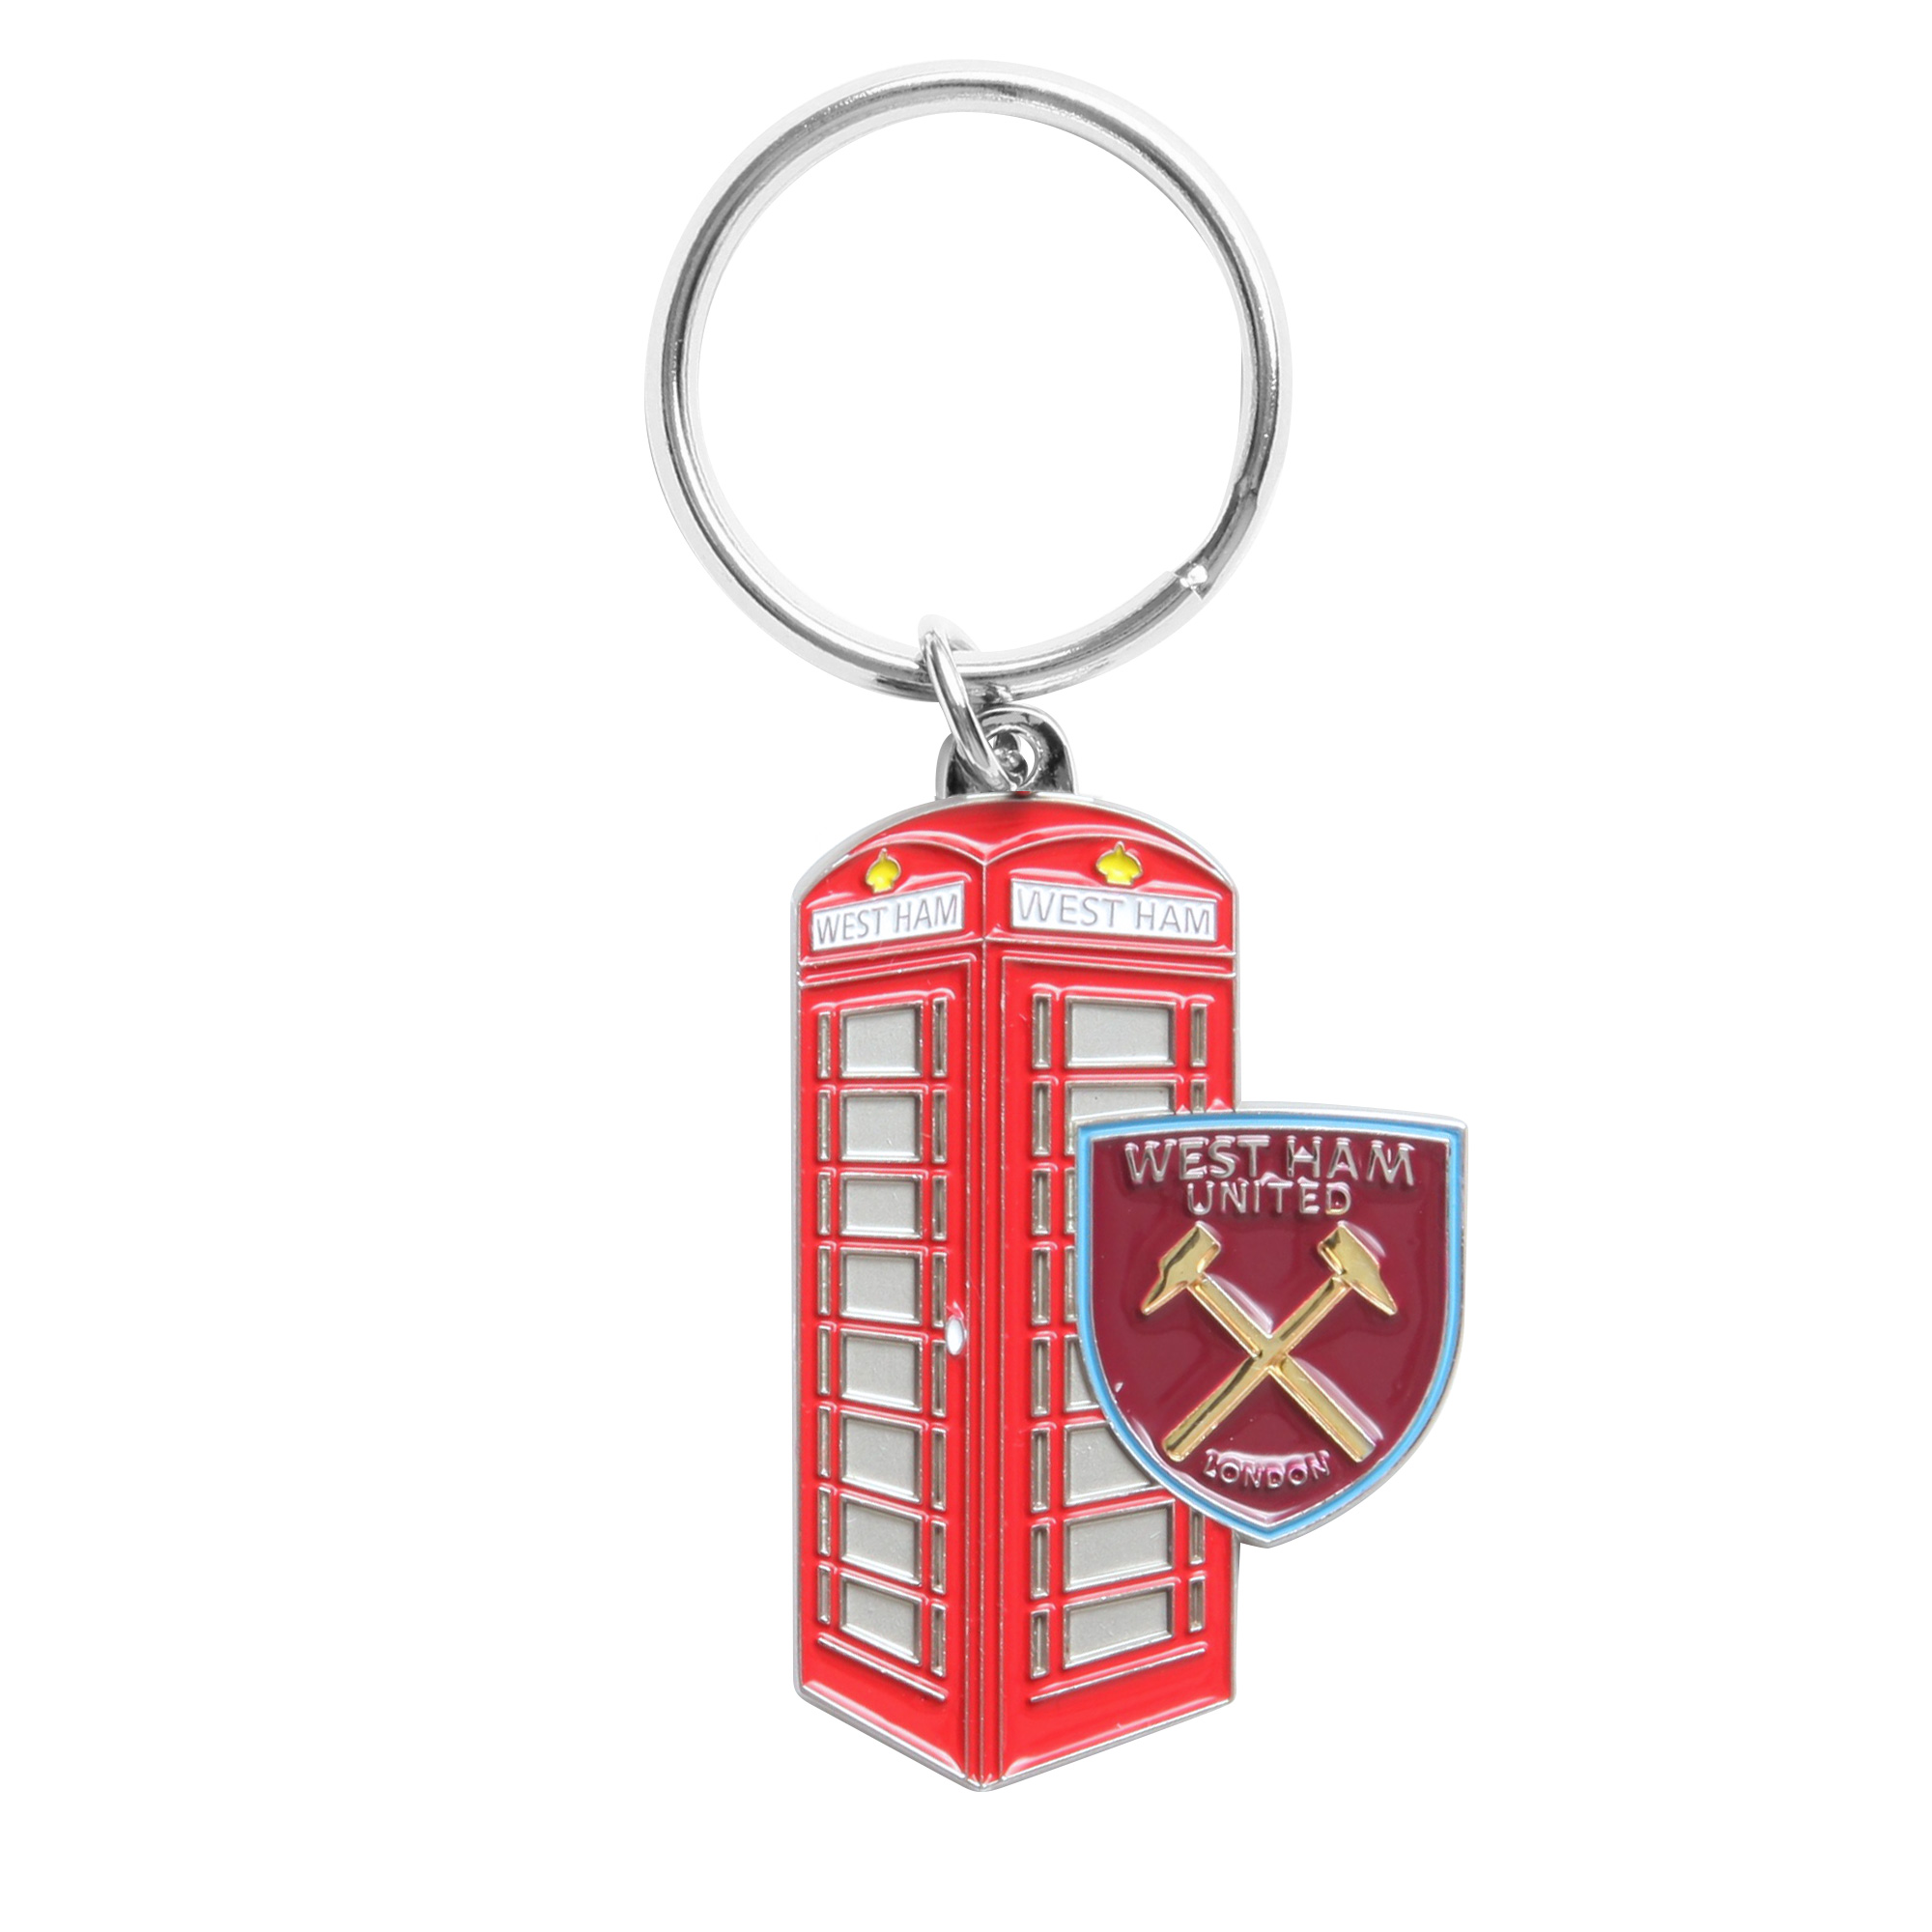 PHONE BOX KEYRING